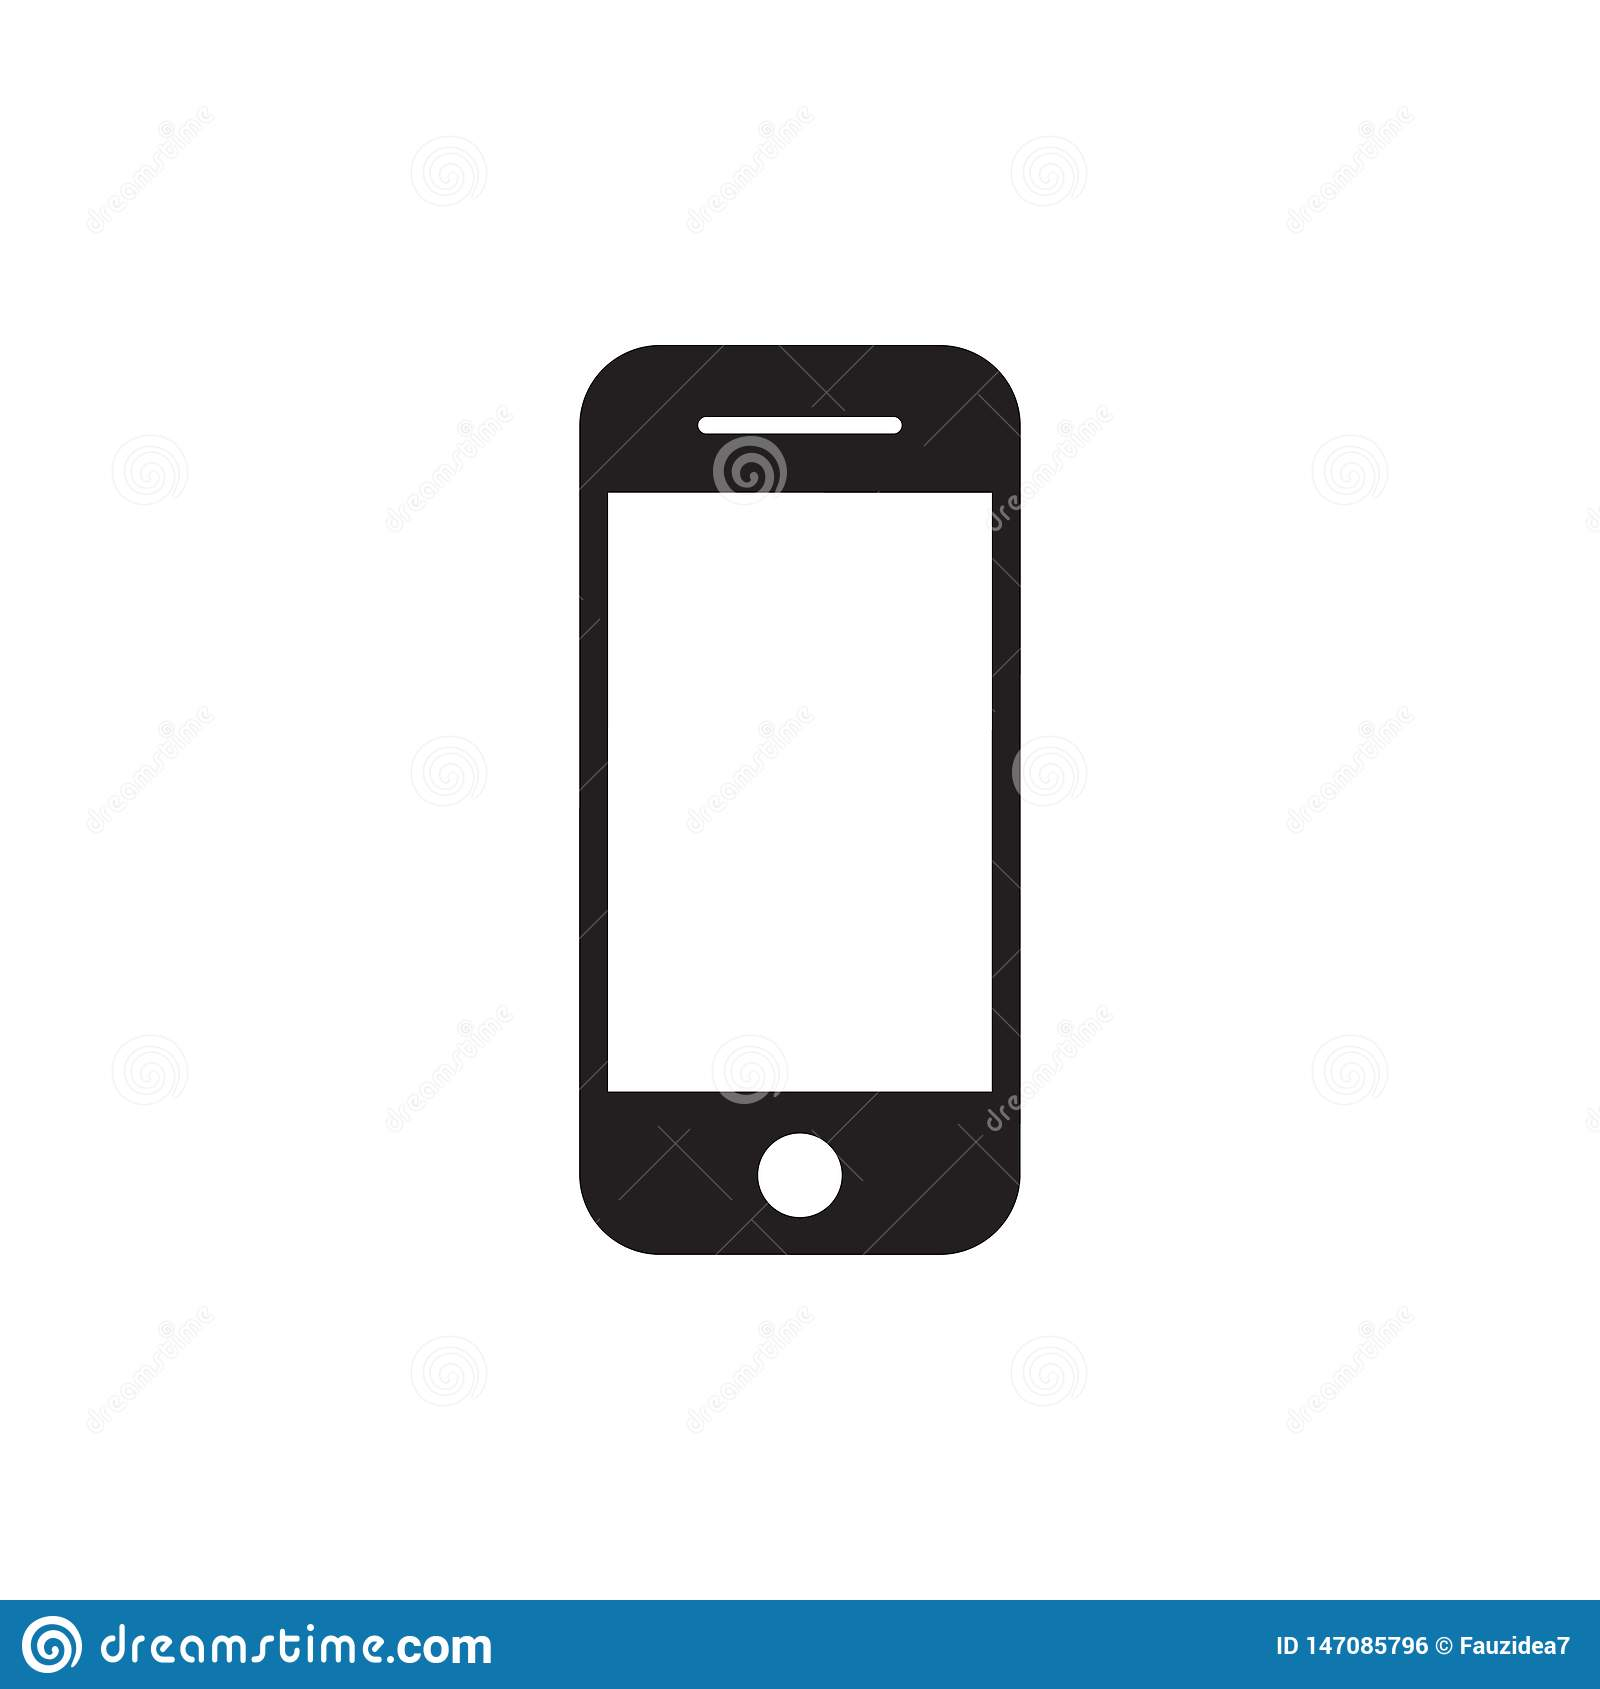 Hand phone icon vector. mobile phone smartphone device gadget in iphone style on the white background